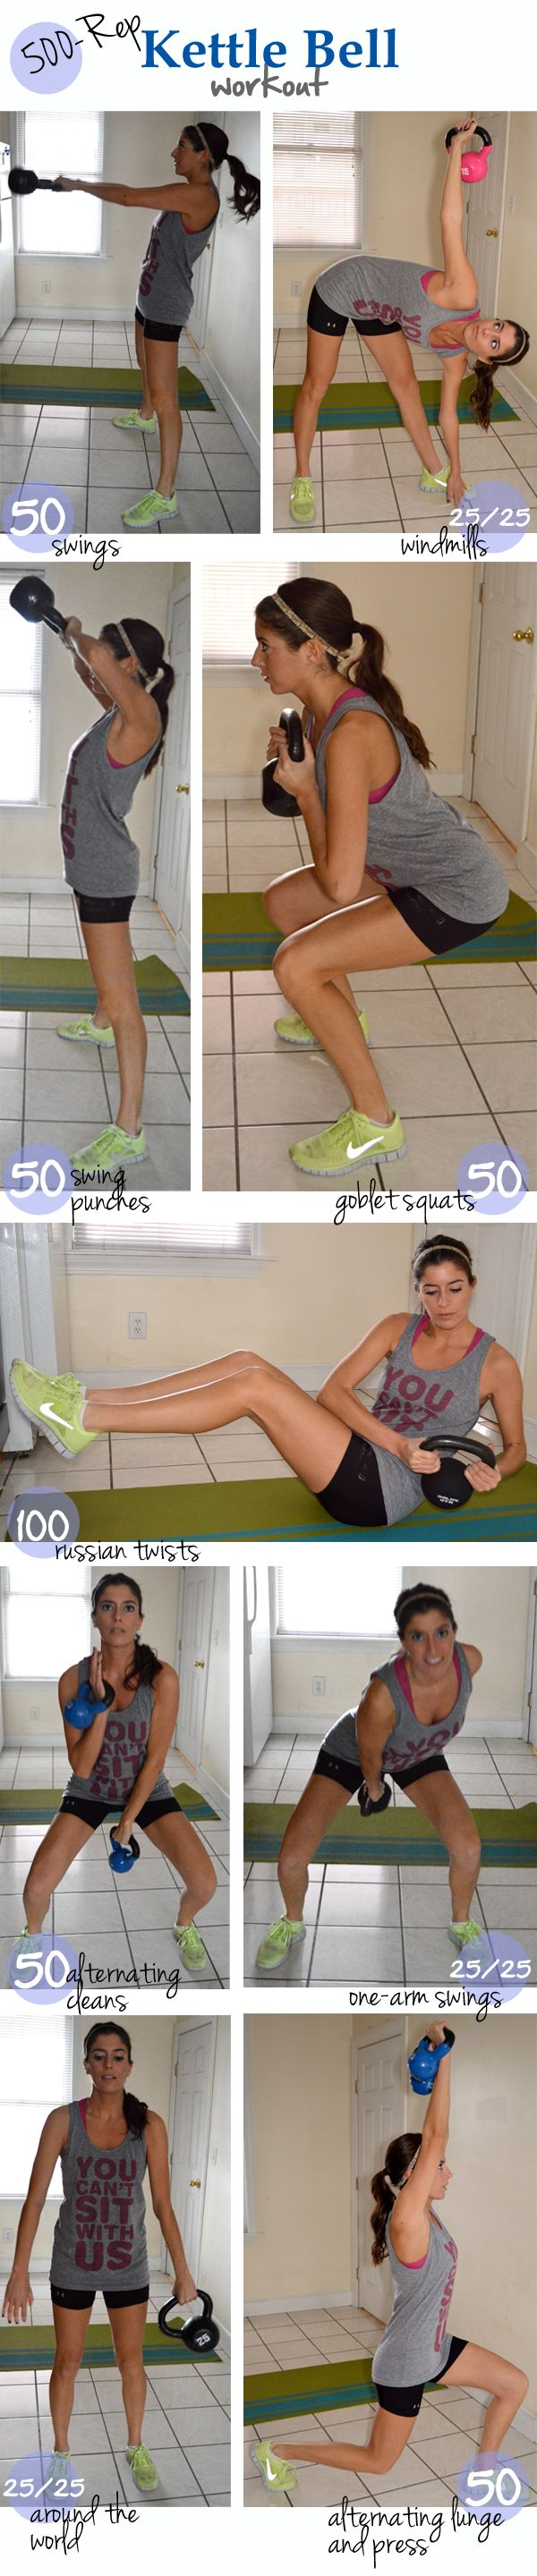 500-rep kettle bell workout